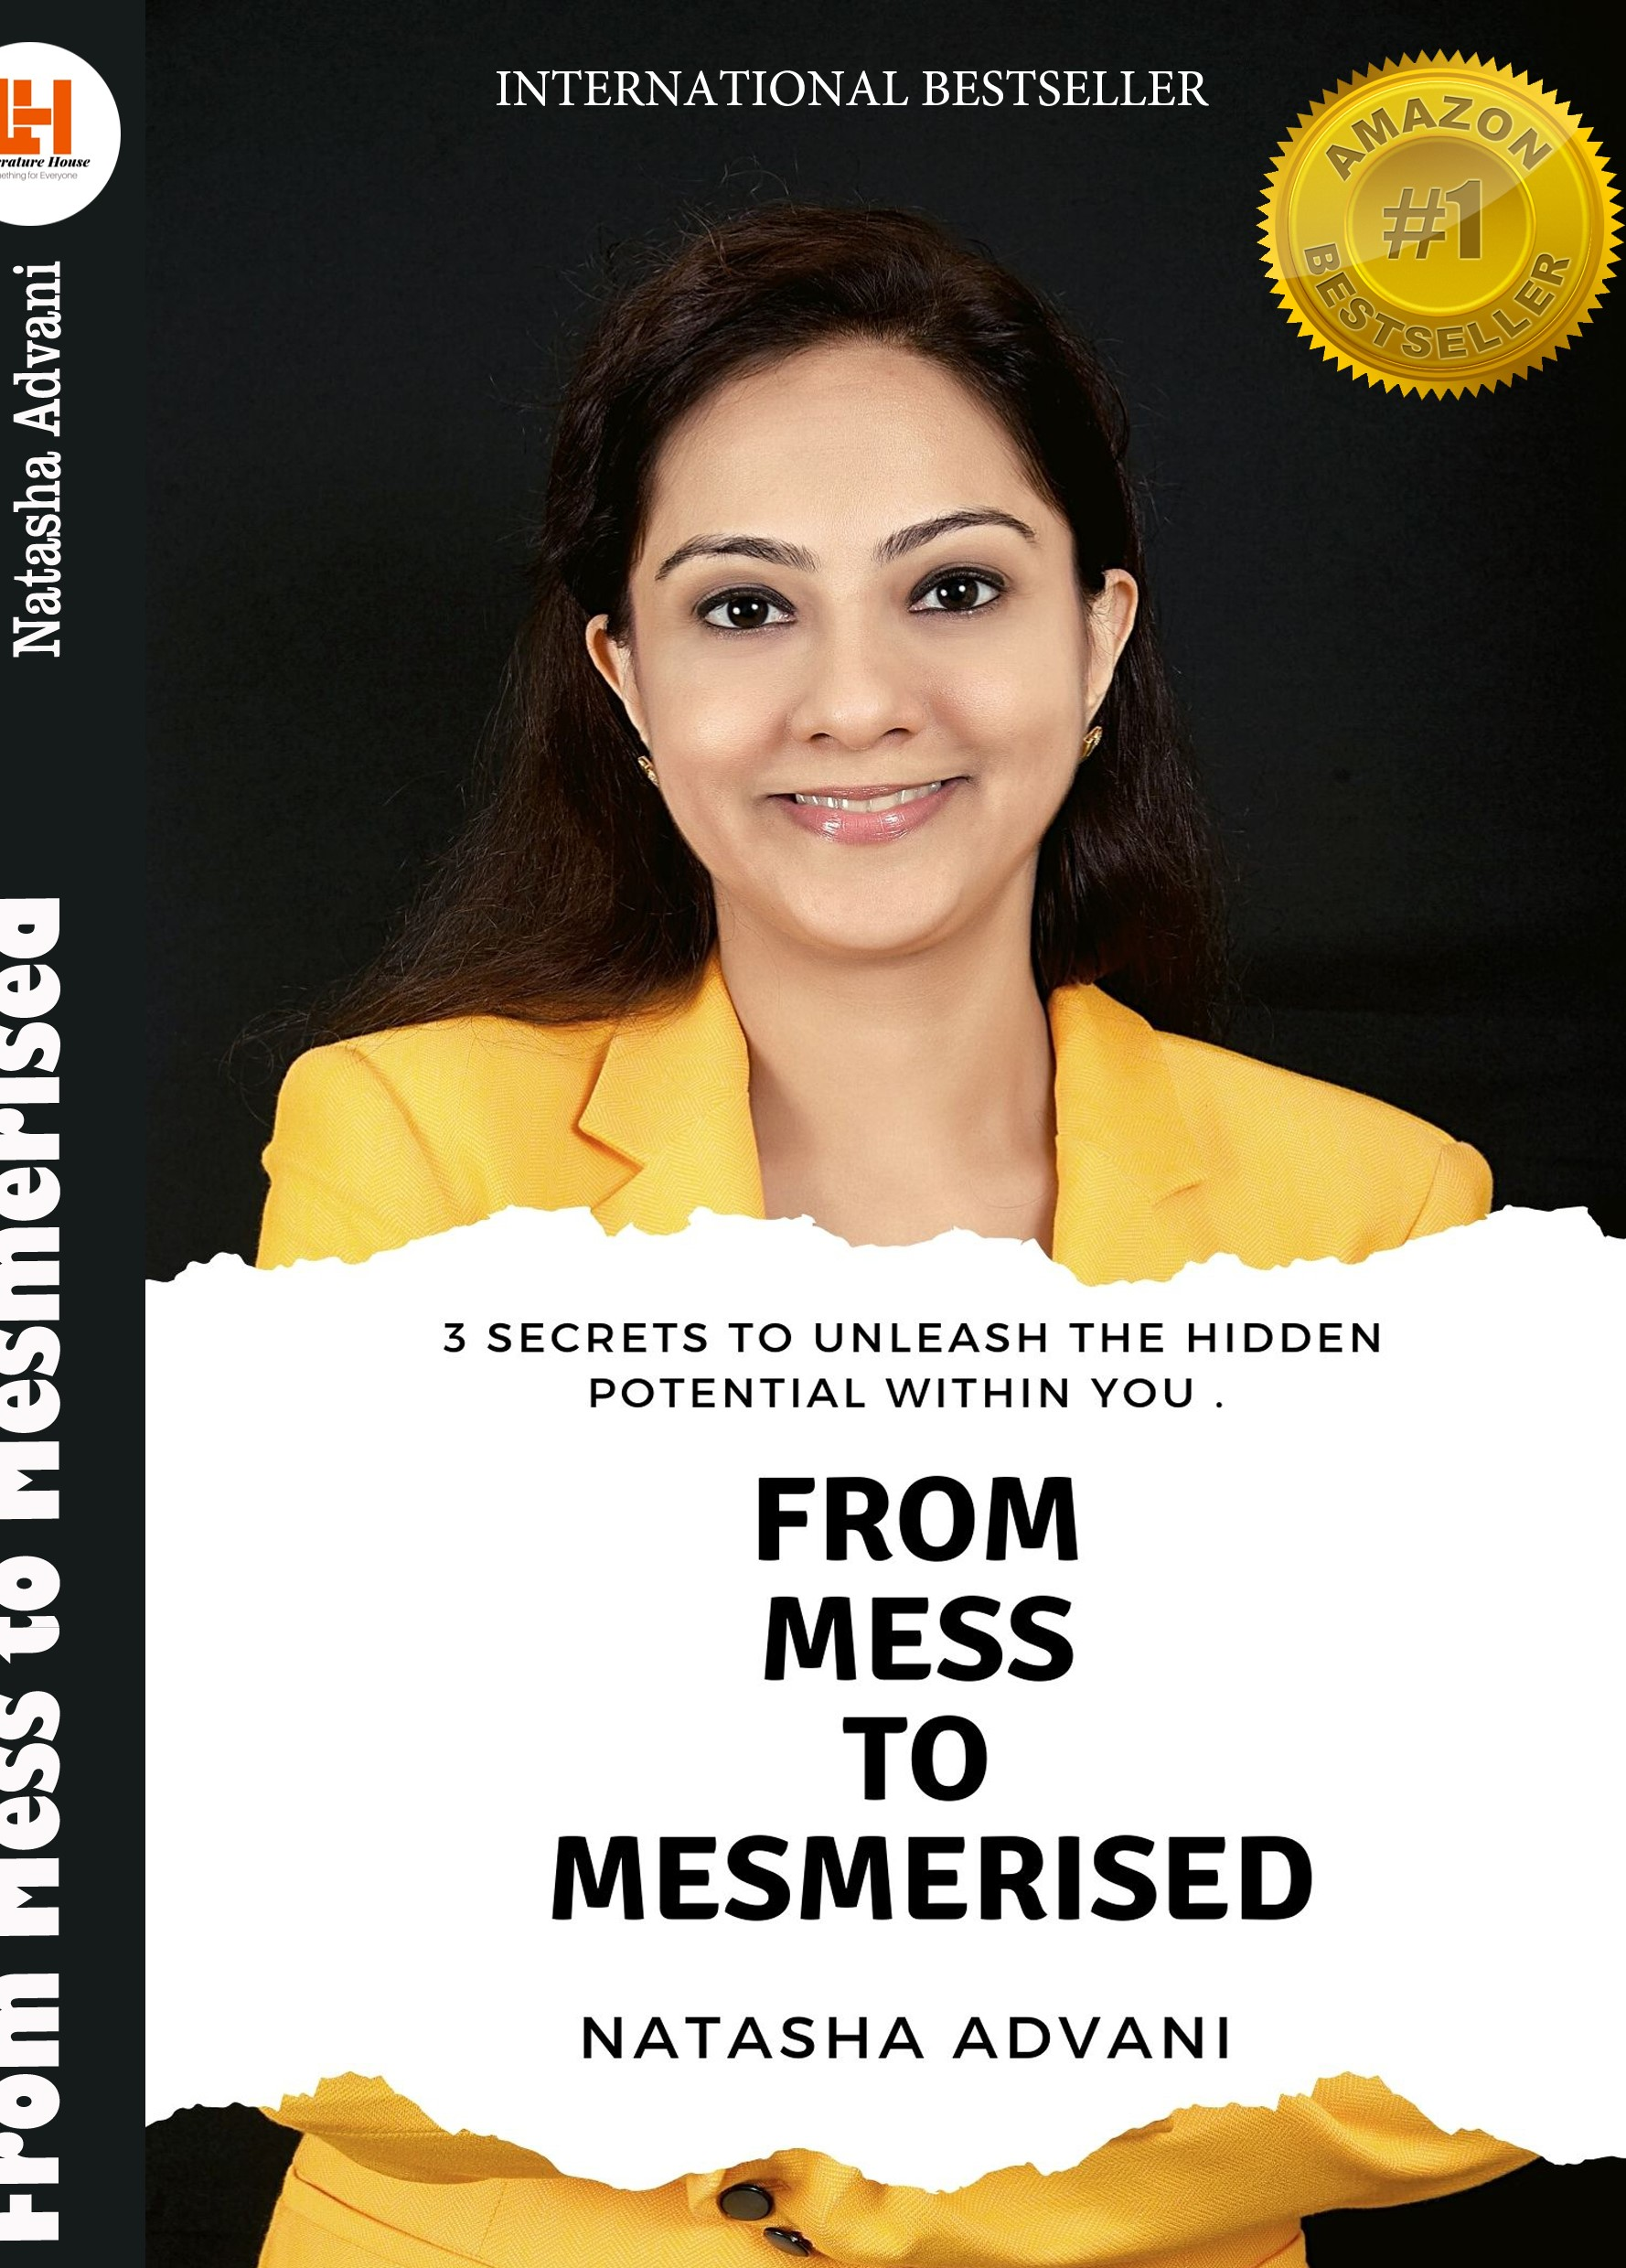 From Mess to Messmerised